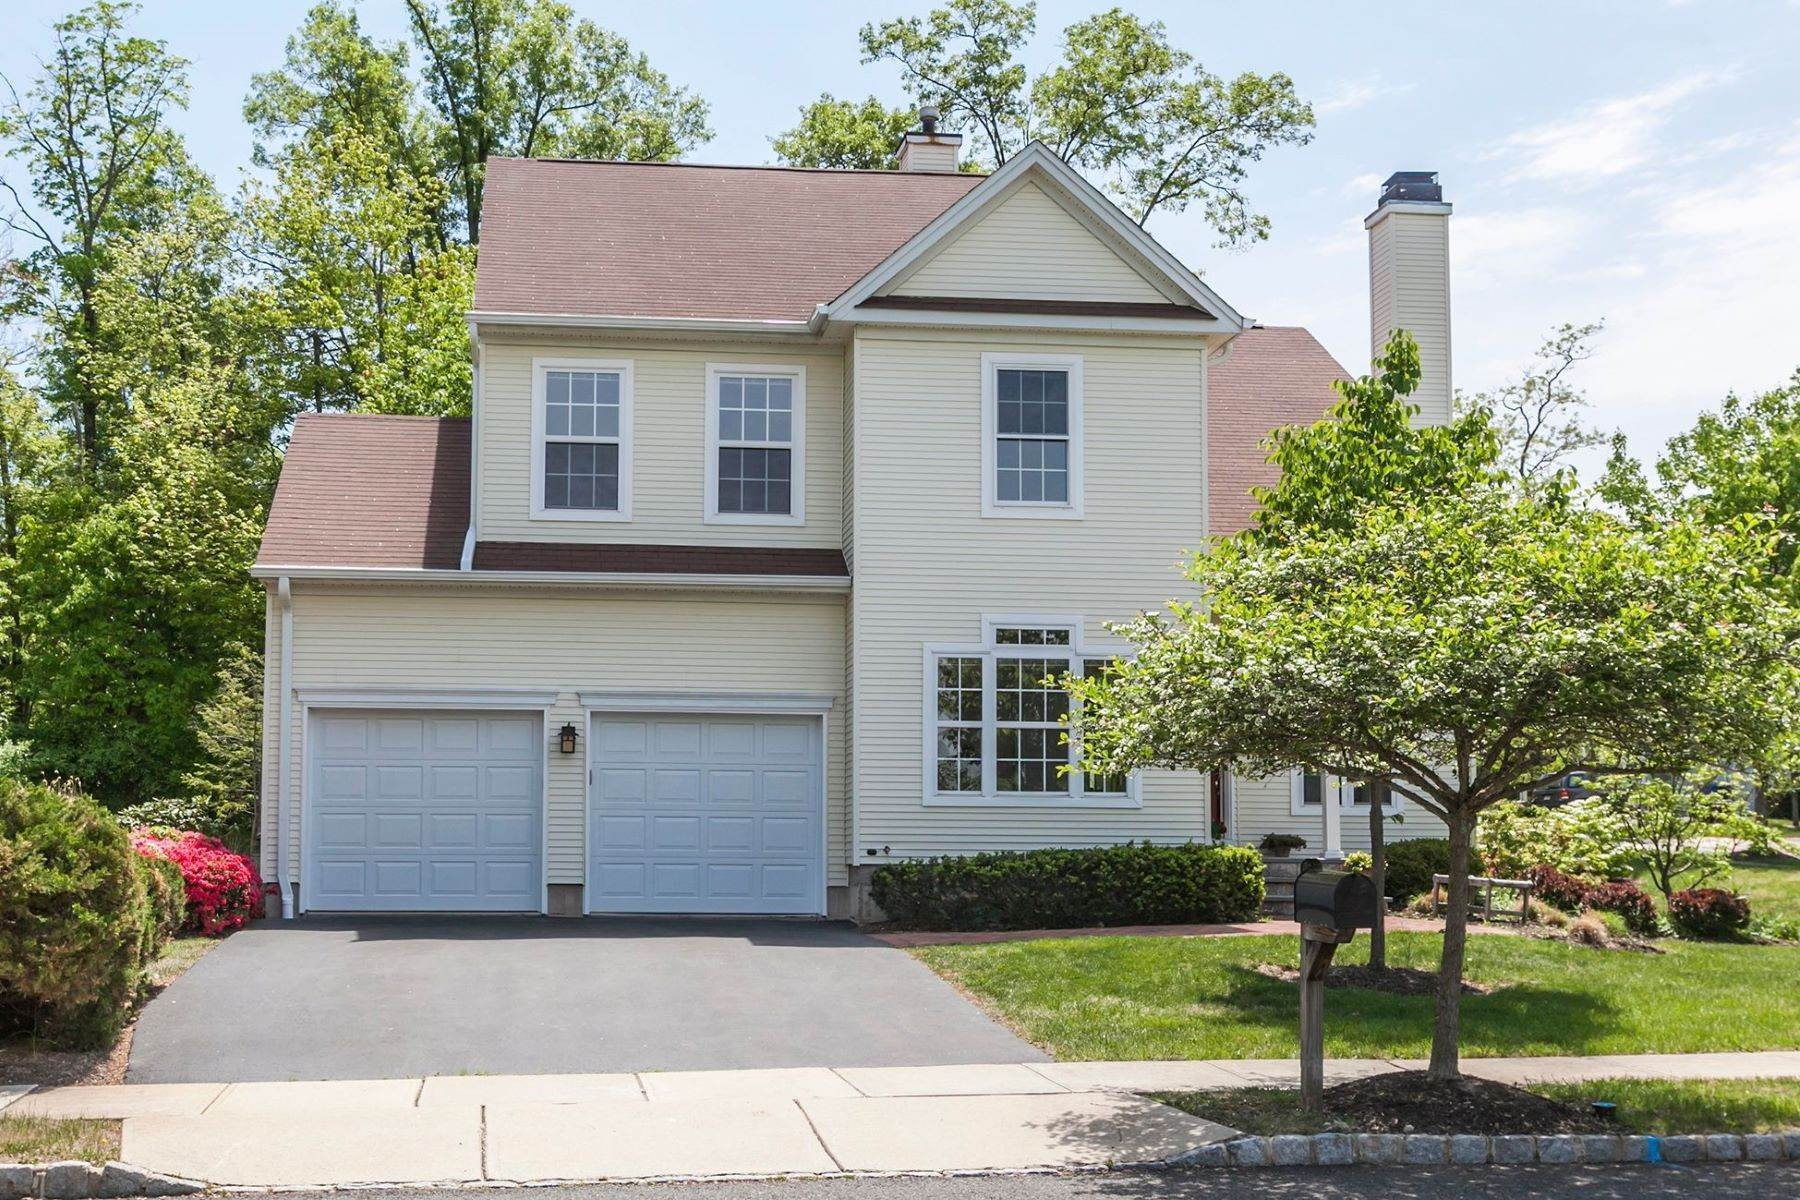 Single Family Homes for Sale at A Standout In The Neighborhood 1 Danby Court Princeton, New Jersey 08540 United States